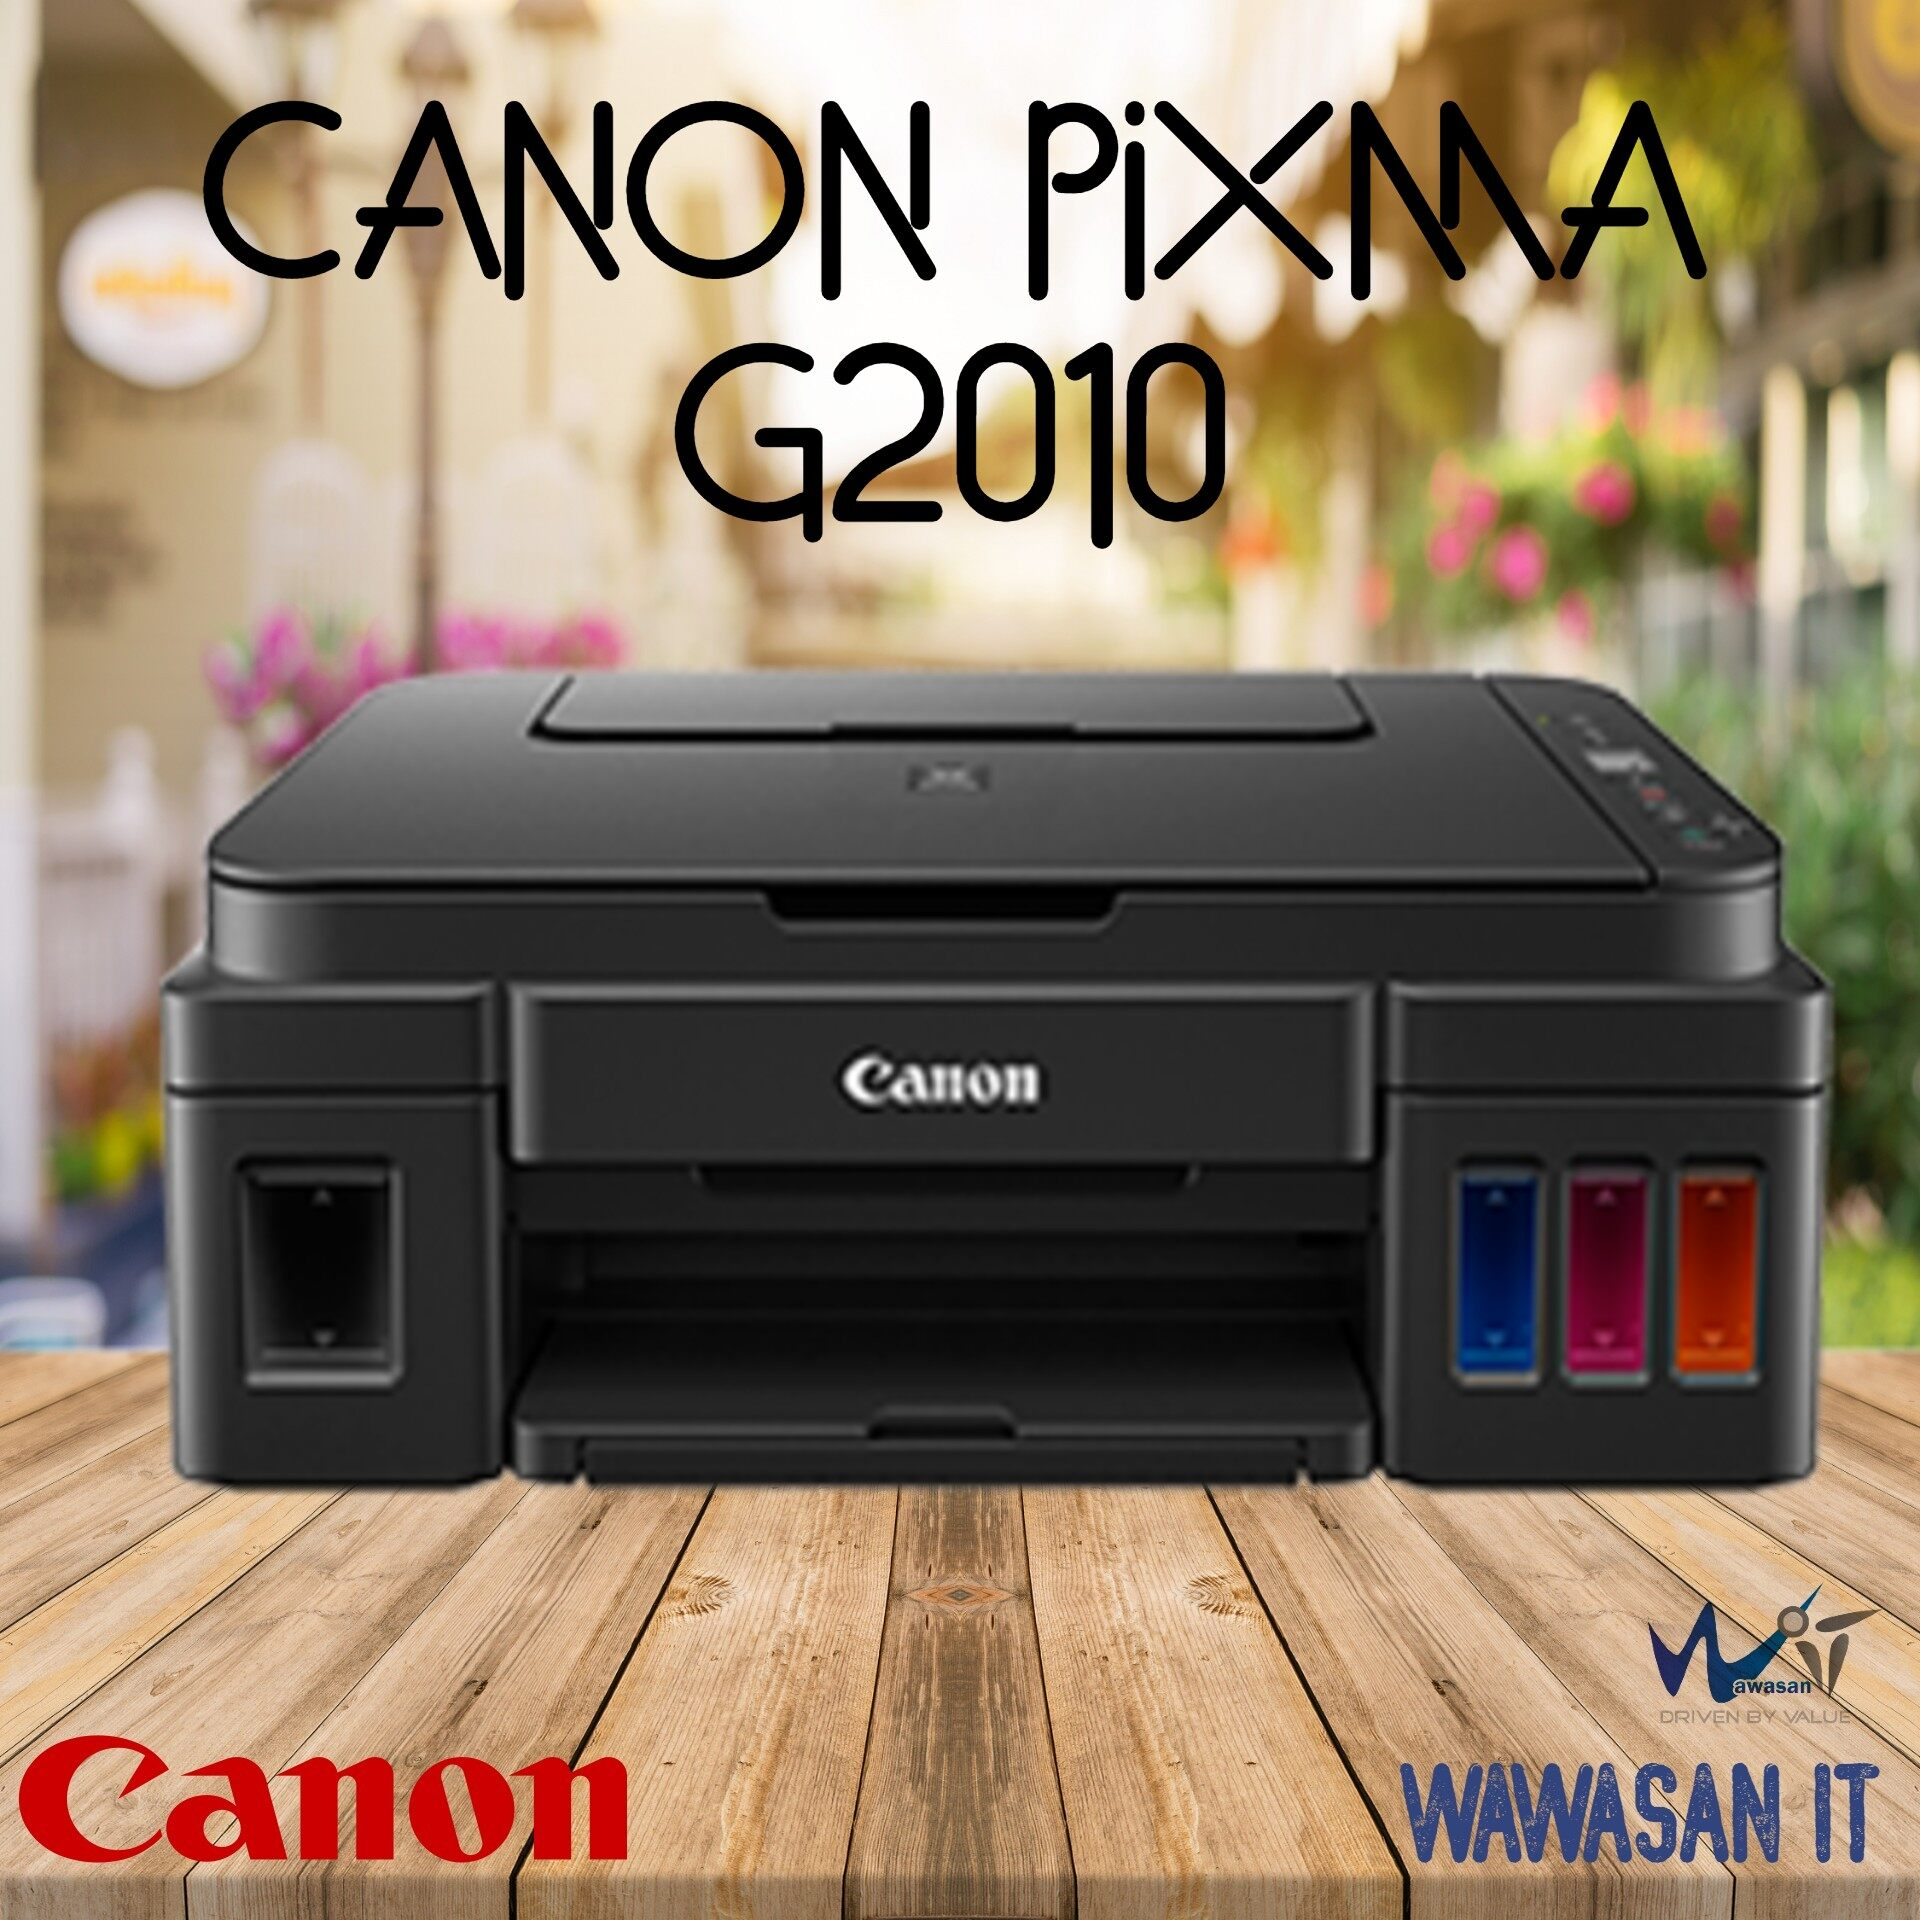 CANON PIXMA G2010 Refillable Ink Tank All-In-One for High Volume Printing, Similar model Canon G3010, Canon G4010 ,HP 415, Epson L3110, Epson L3150, Brother DCP T510w , Brother DCP T310, Brother DCP T710w, Brother DcP T910DW